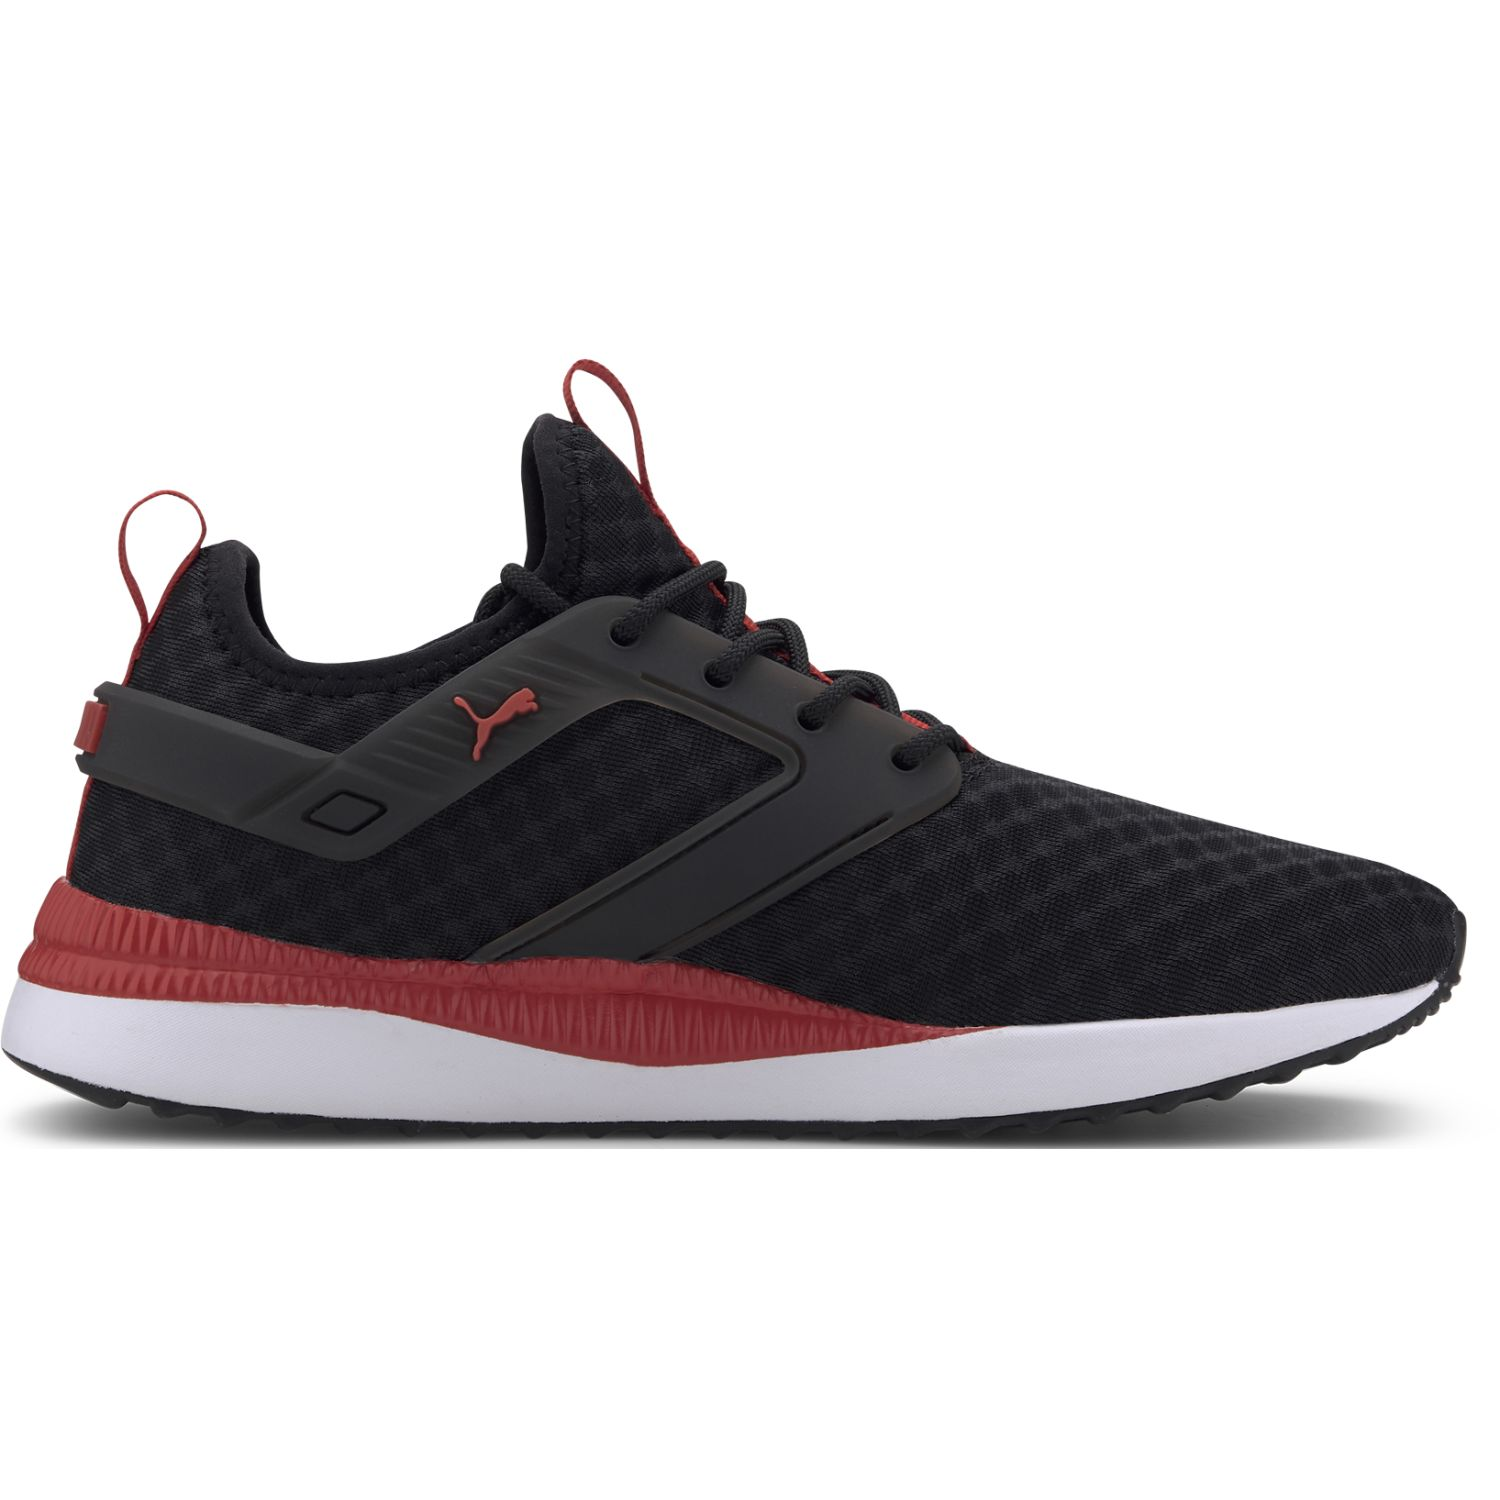 Puma pacer next excel core Negro / rojo Walking